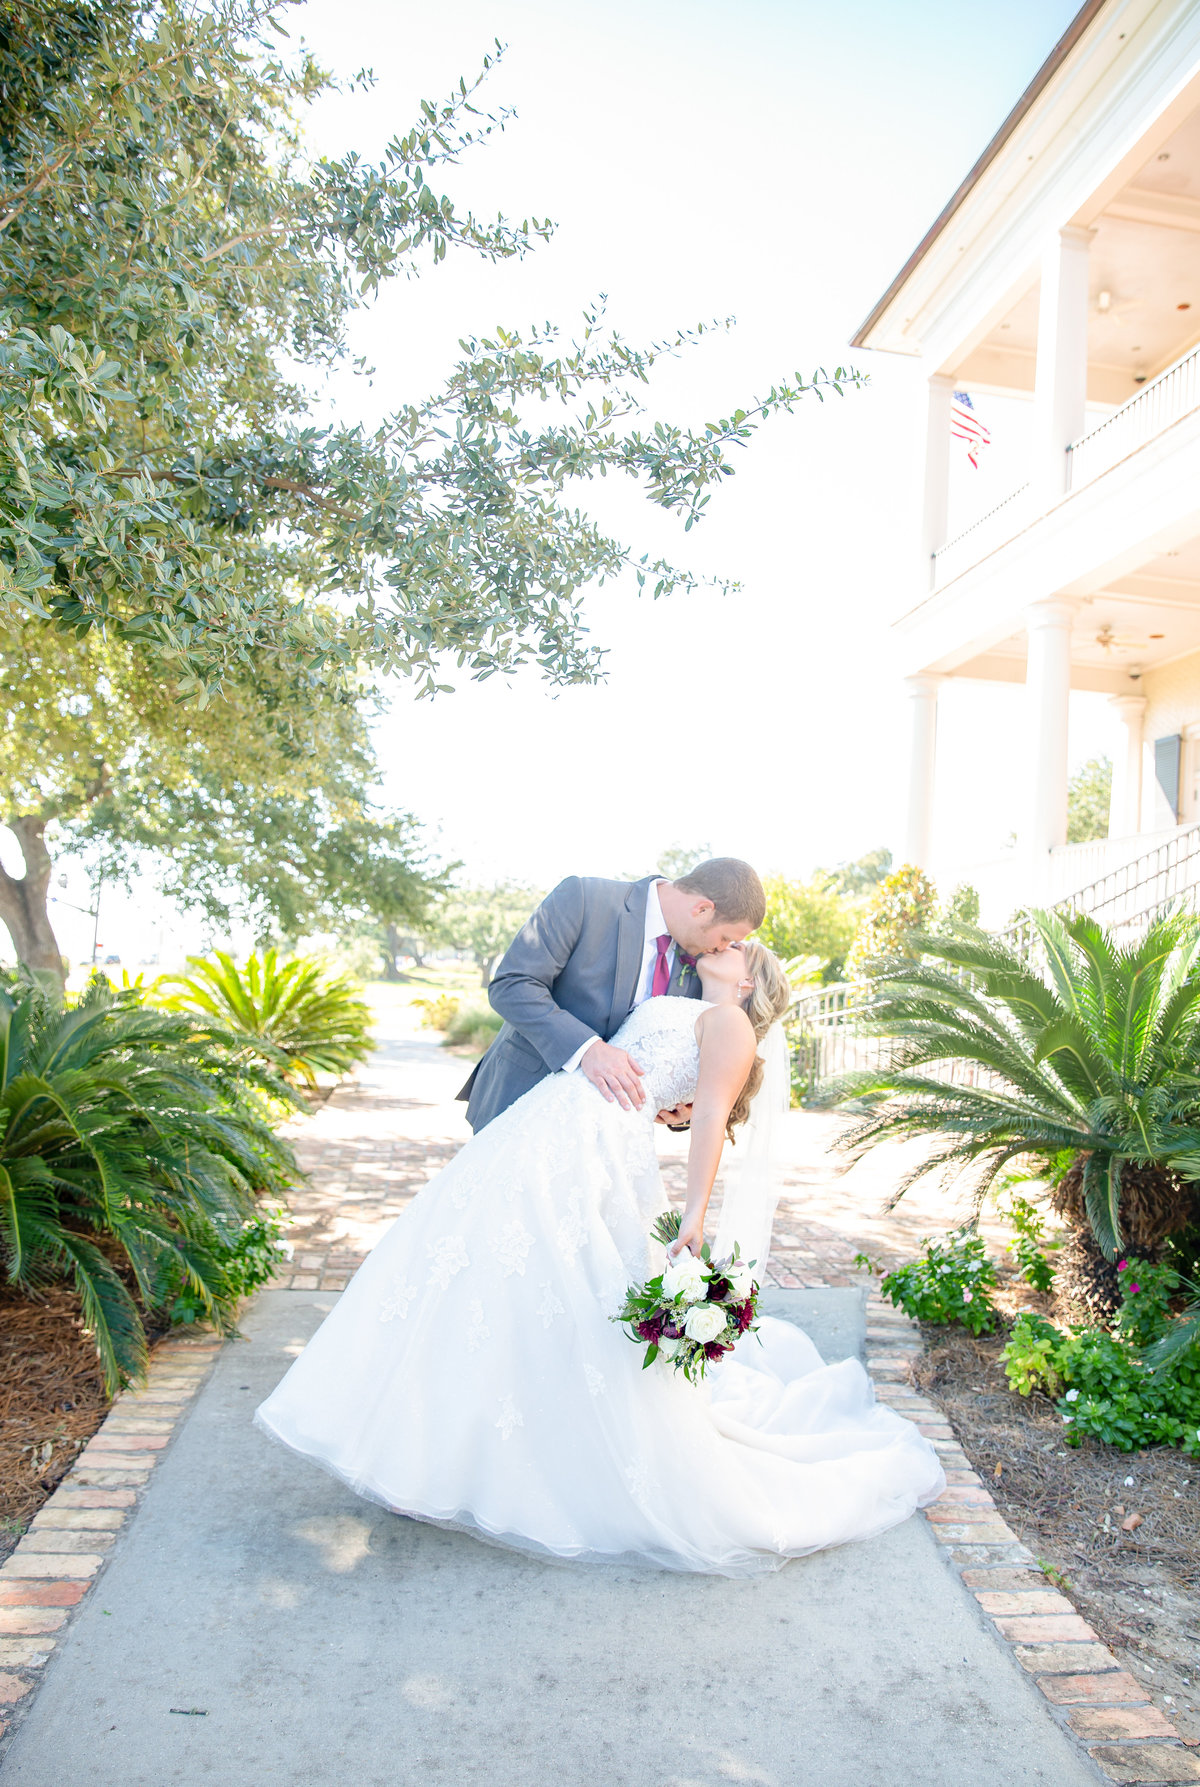 Kayce-Stork-Photography-Biloxi-Wedding-Photographers28